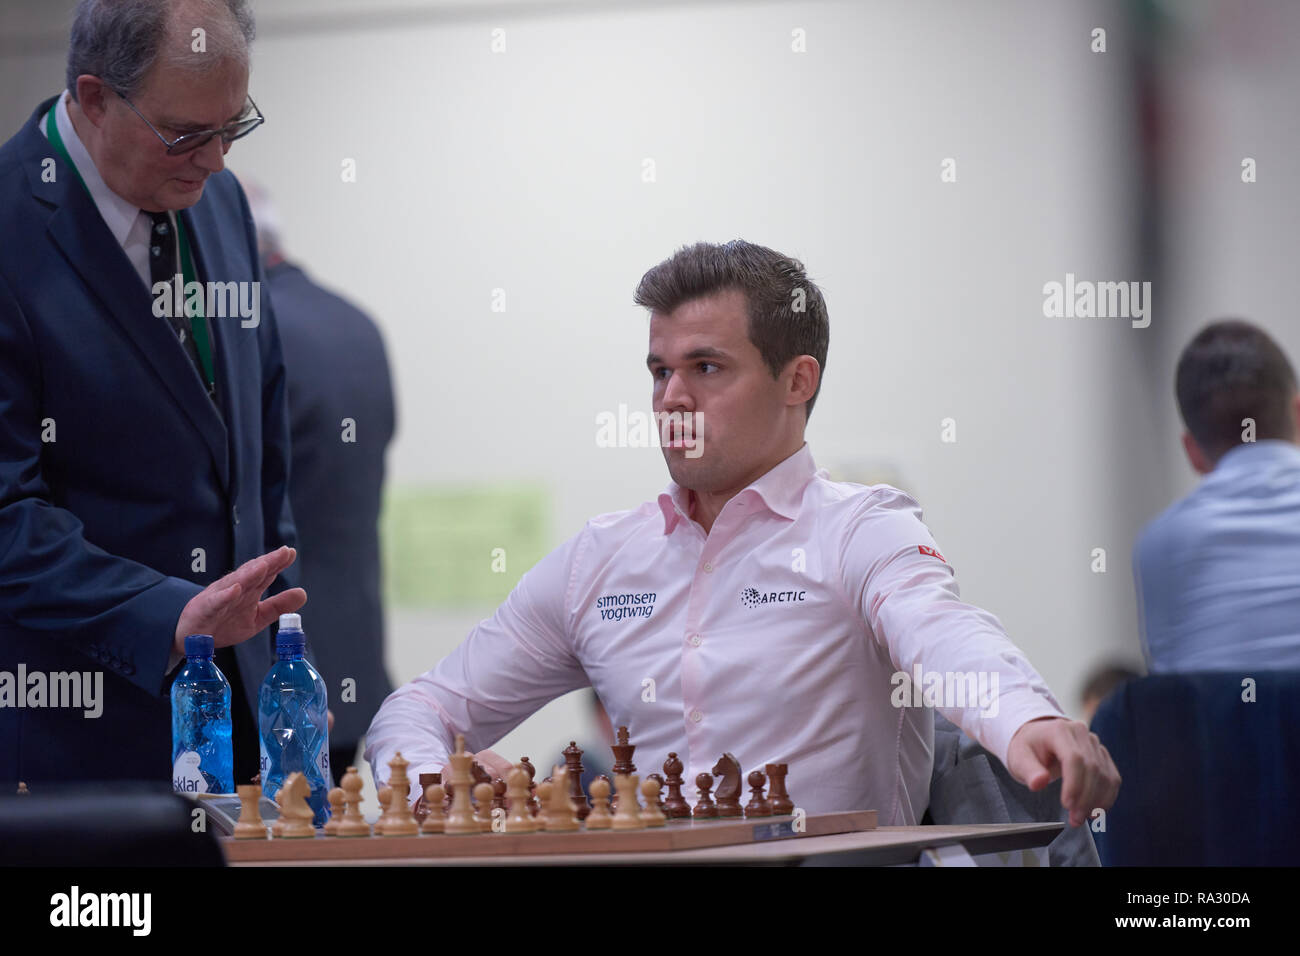 Magnus Carlsen Stock Photos & Magnus Carlsen Stock Images - Alamy